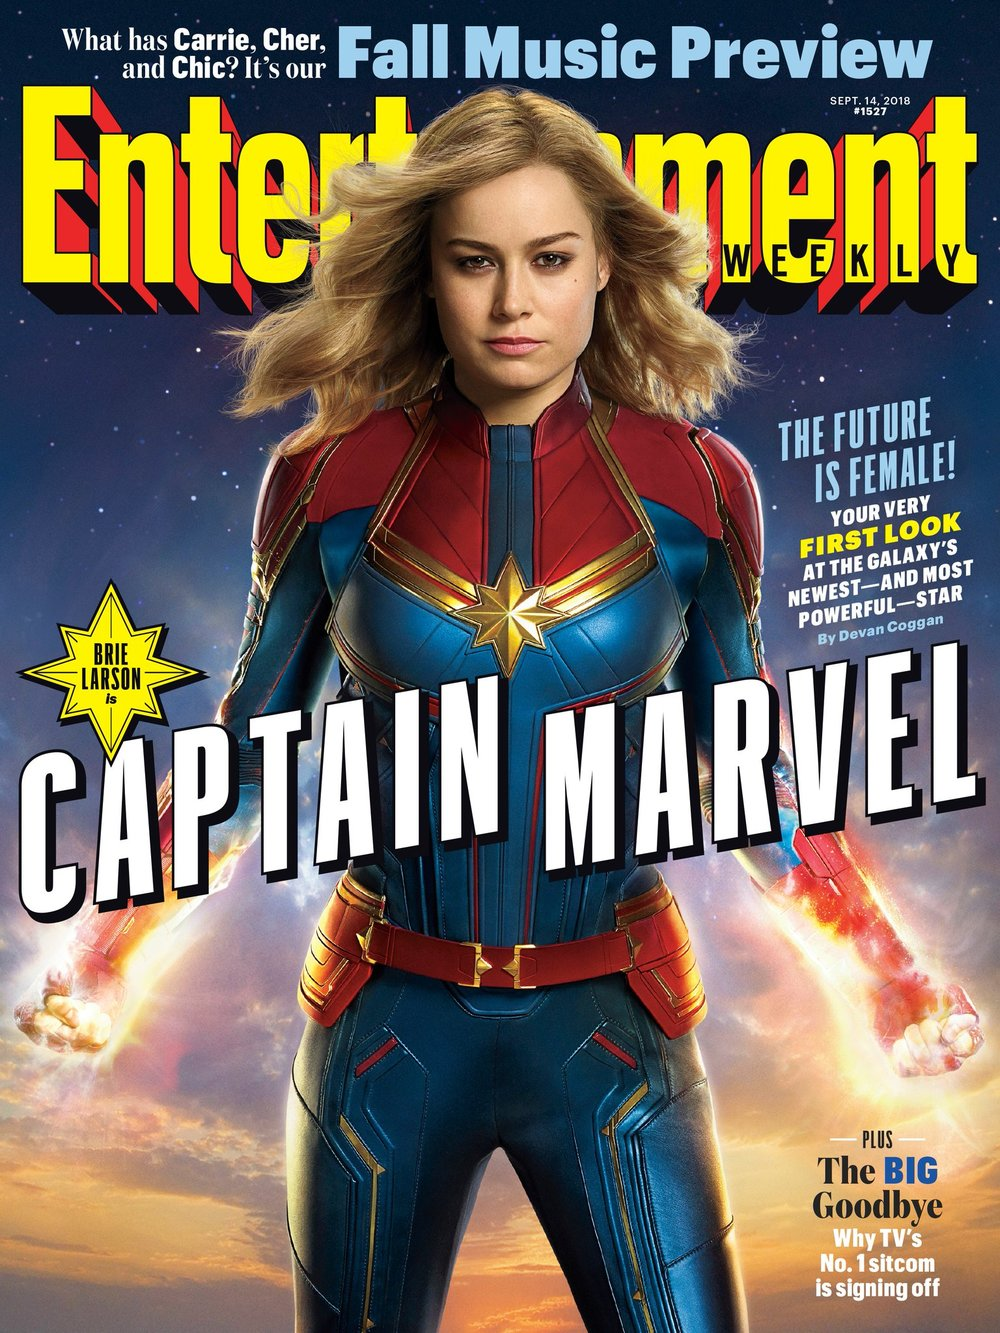 https://ew.com/movies/2018/09/05/captain-marvel-ew-cover-brie-larson/?utm_source=twitter.com&utm_term=D21EF478-B124-11E8-AEC5-7969663BB7C6&utm_medium=social&utm_campaign=entertainmentweekly_ew&__twitter_impression=true&__twitter_impression=true&__twitter_impression=true&__twitter_impression=true&__twitter_impression=true&__twitter_impression=true&__twitter_impression=true&__twitter_impression=true&__twitter_impression=true&__twitter_impression=true&__twitter_impression=true&__twitter_impression=true&__twitter_impression=true&__twitter_impression=true&__twitter_impression=true&__twitter_impression=true&__twitter_impression=true&__twitter_impression=true&__twitter_impression=true&__twitter_impression=true&__twitter_impression=true&__twitter_impression=true&__twitter_impression=true&__twitter_impression=true&__twitter_impression=true&__twitter_impression=true&__twitter_impression=true&__twitter_impression=true&__twitter_impression=true&__twitter_impression=true&__twitter_impression=true&__twitter_impression=true&__twitter_impression=true&__twitter_impression=true&__twitter_impression=true&__twitter_impression=true&__twitter_impression=true&__twitter_impression=true&__twitter_impression=true&__twitter_impression=true&__twitter_impression=true&__twitter_impression=true&__twitter_impression=true&__twitter_impression=true&__twitter_impression=true&__twitter_impression=true&__twitter_impression=true&__twitter_impression=true&__twitter_impression=true&__twitter_impression=true&__twitter_impression=true&__twitter_impression=true&__twitter_impression=true&__twitter_impression=true&__twitter_impression=true&__twitter_impression=true&__twitter_impression=true&__twitter_impression=true&__twitter_impression=true&__twitter_impression=true&__twitter_impression=true&__twitter_impression=true&__twitter_impression=true&__twitter_impression=true&__twitter_impression=true&__twitter_impression=true&__twitter_impression=true&__twitter_impression=true&__twitter_impression=true&__twitter_impression=true&__twitter_impression=true&__twitter_impression=true&__twitter_impression=true&__twitter_impression=true&__twitter_impression=true&__twitter_impression=true&__twitter_impression=true&__twitter_impression=true&__twitter_impression=true&__twitter_impression=true&__twitter_impression=true&__twitter_impression=true&__twitter_impression=true&__twitter_impression=true&__twitter_impression=true&__twitter_impression=true&__twitter_impression=true&__twitter_impression=true&__twitter_impression=true&__twitter_impression=true&__twitter_impression=true&__twitter_impression=true&__twitter_impression=true&__twitter_impression=true&__twitter_impression=true1